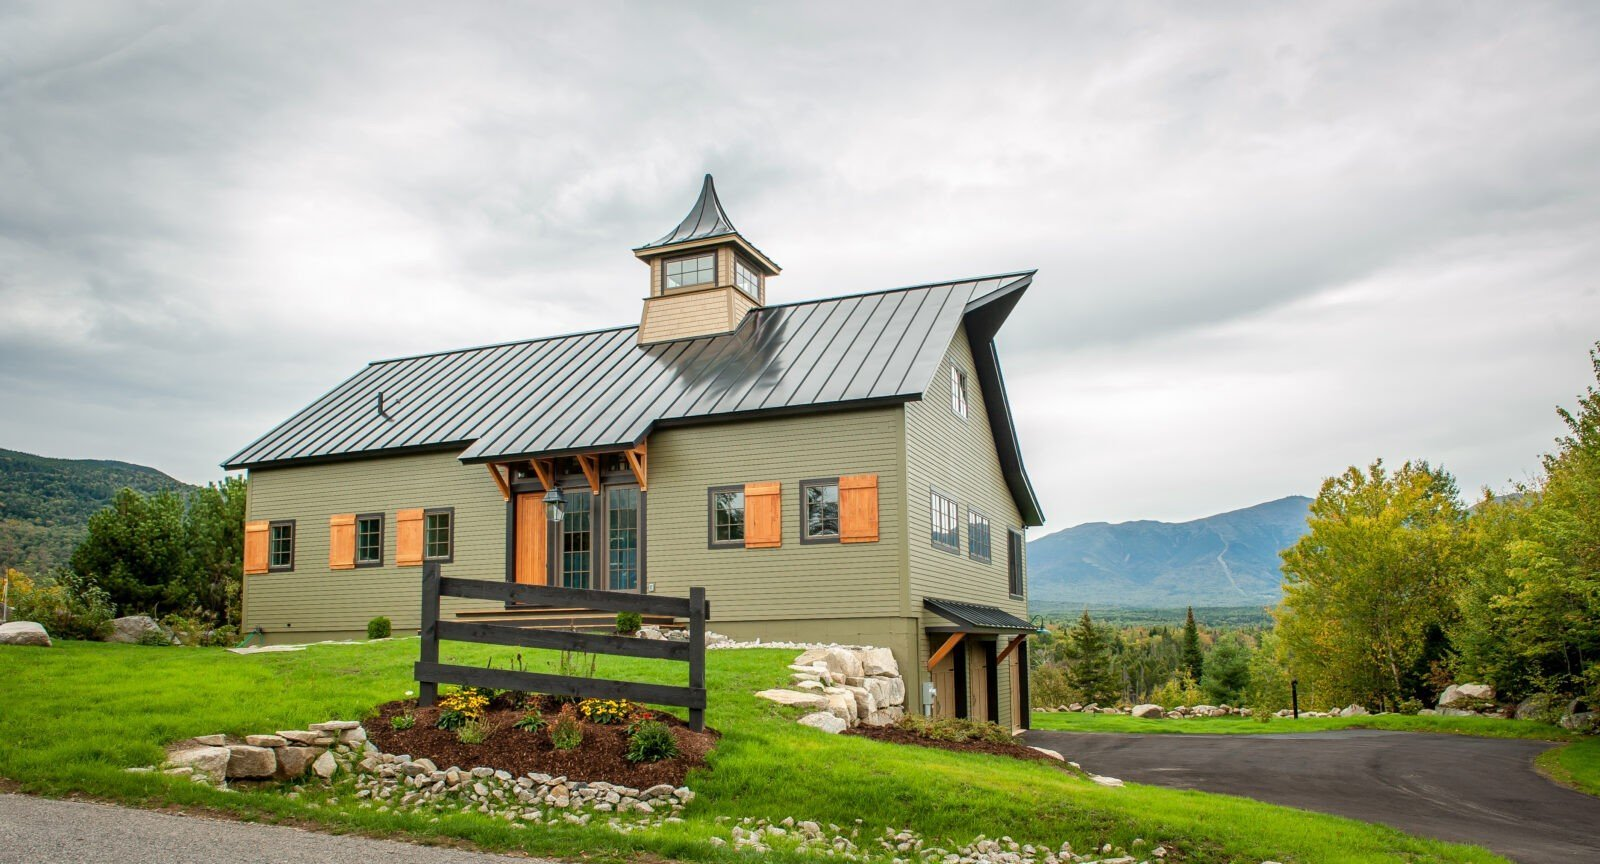 Top notch barn home plans from the ybh design team for New houses that look old plans